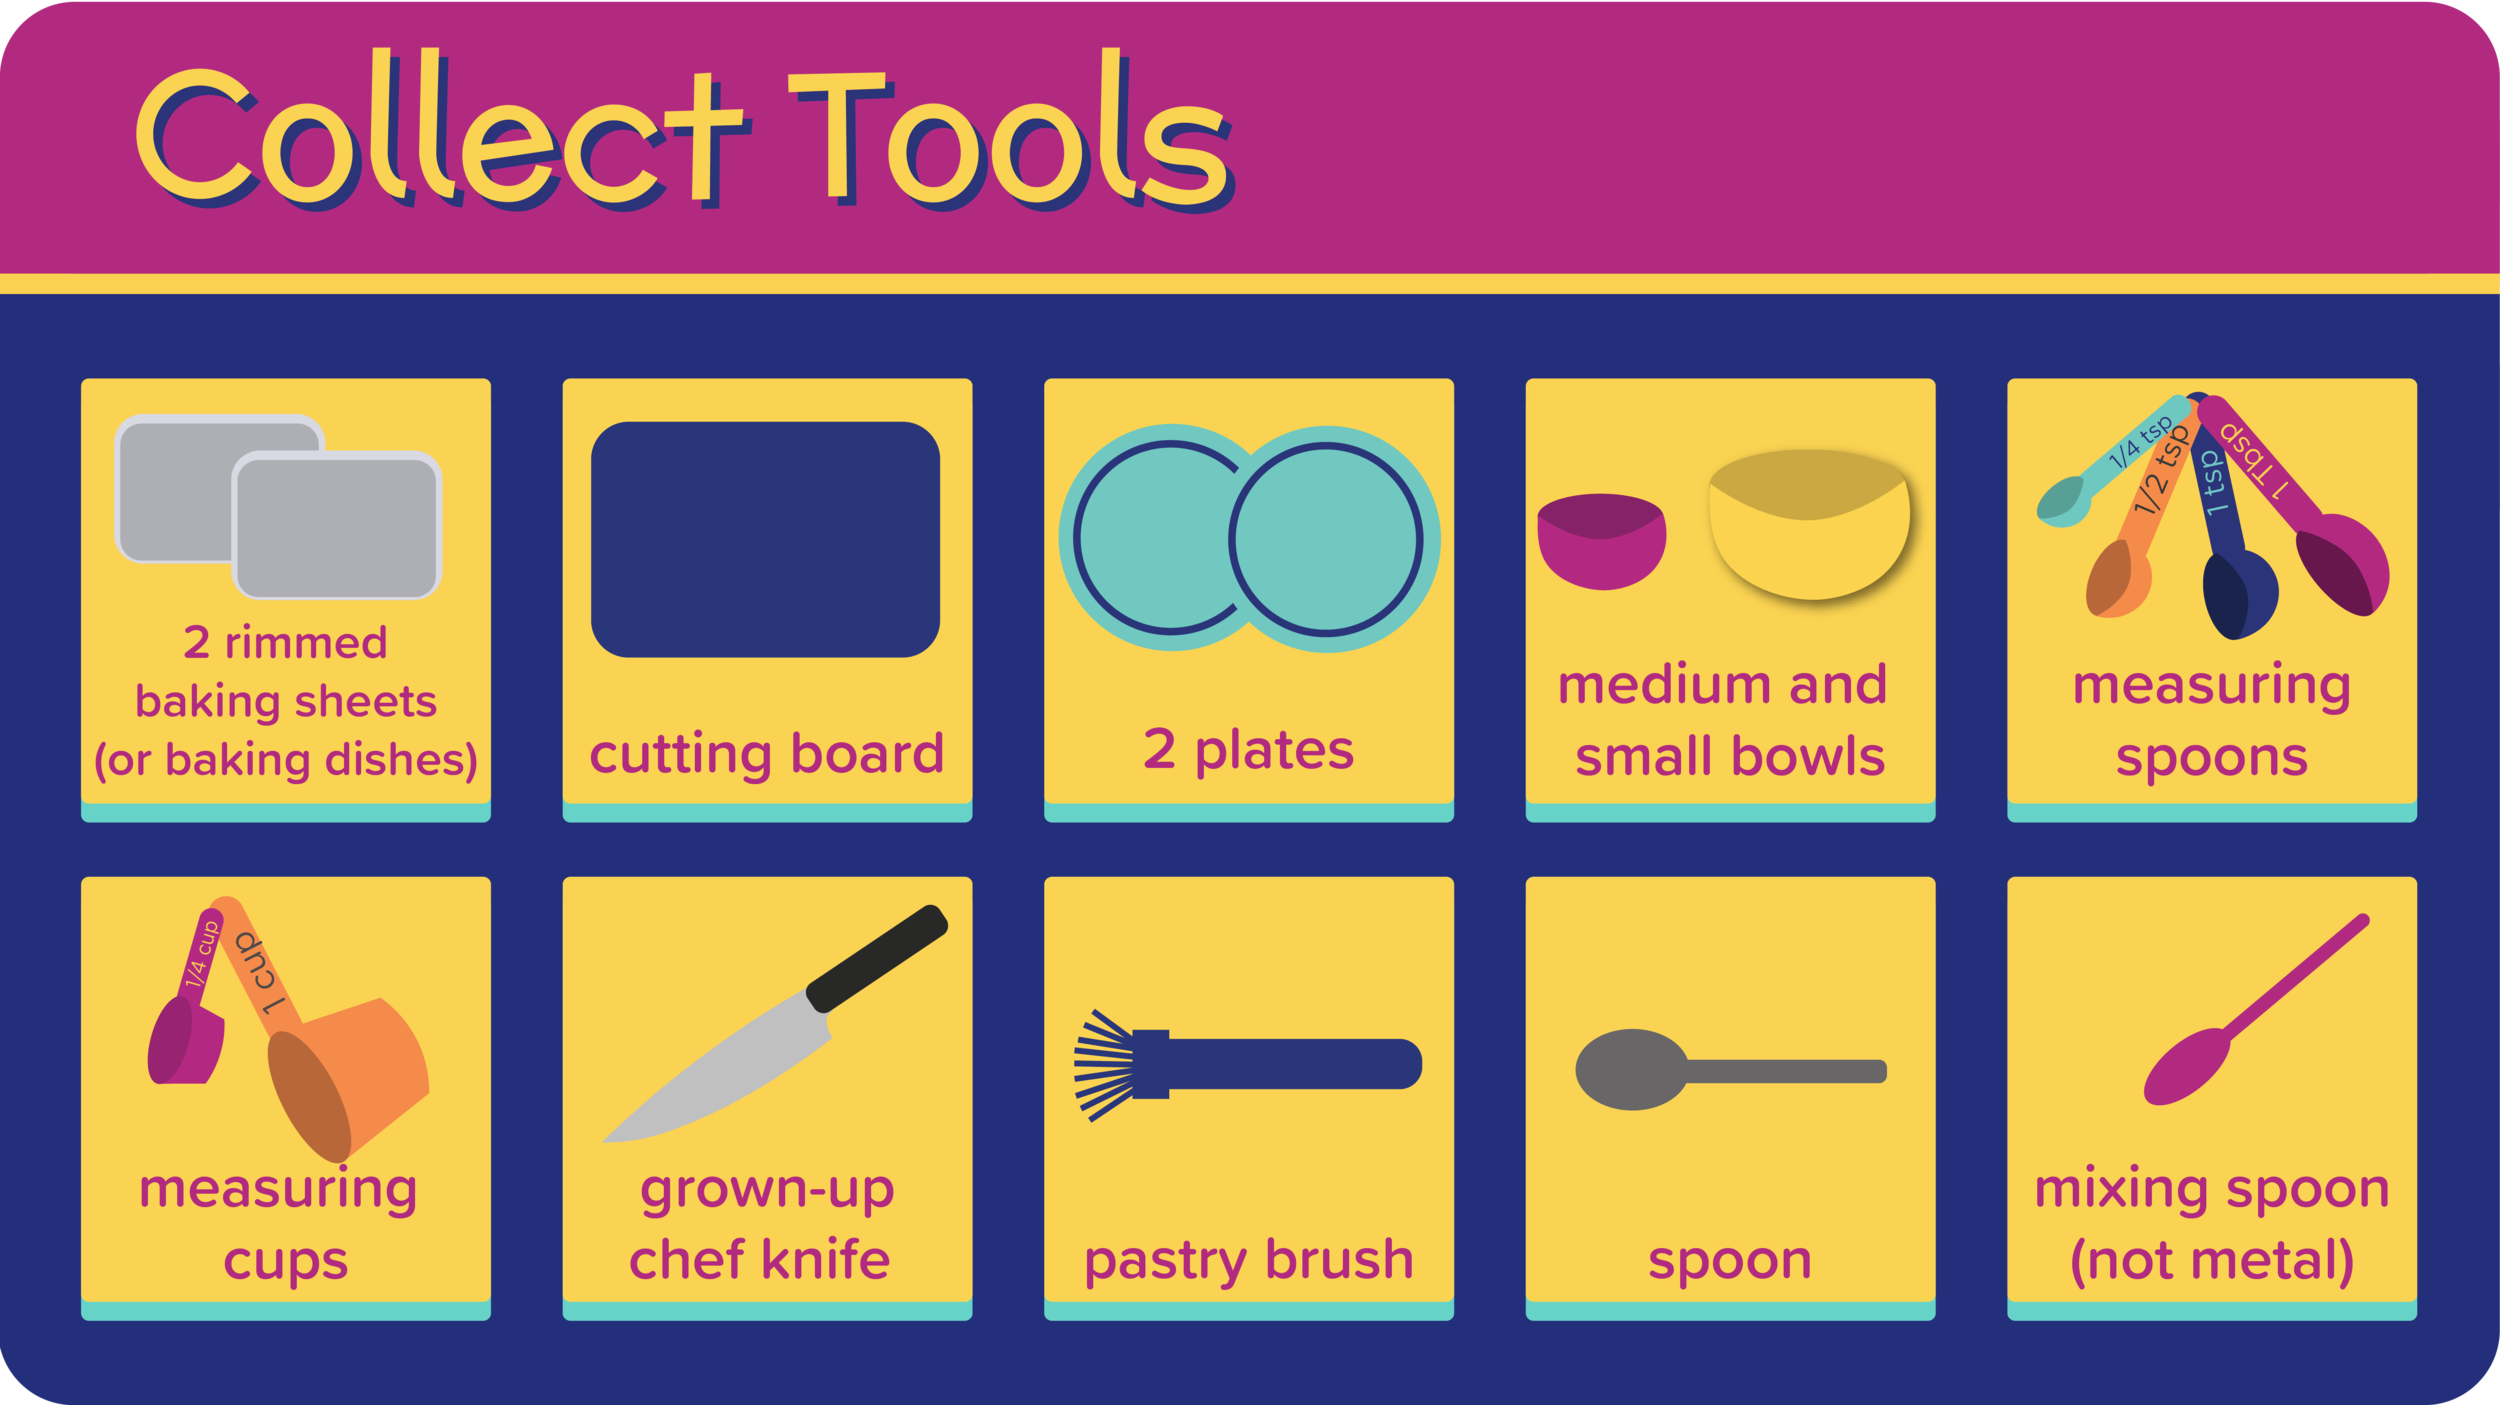 05_ChickenFingersButternutBrussels_Collect Tools-01.png